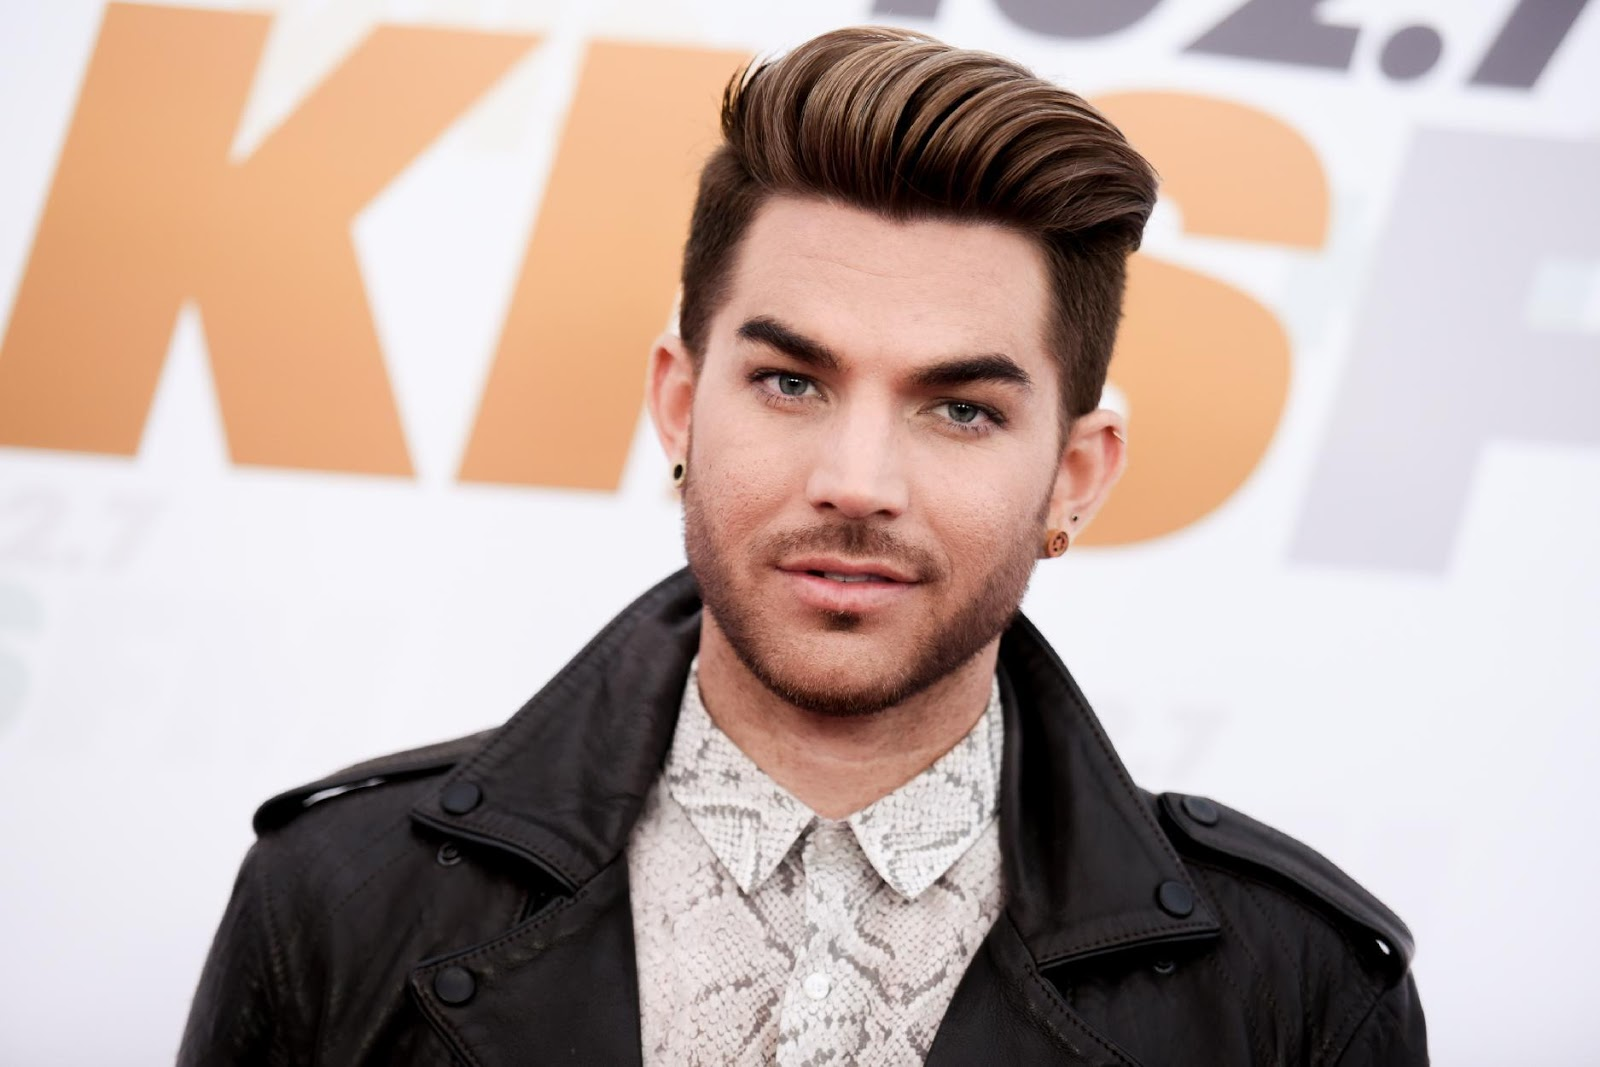 Adam Lambert Will Perform At The Eska Music Awards In Poland On 8 29